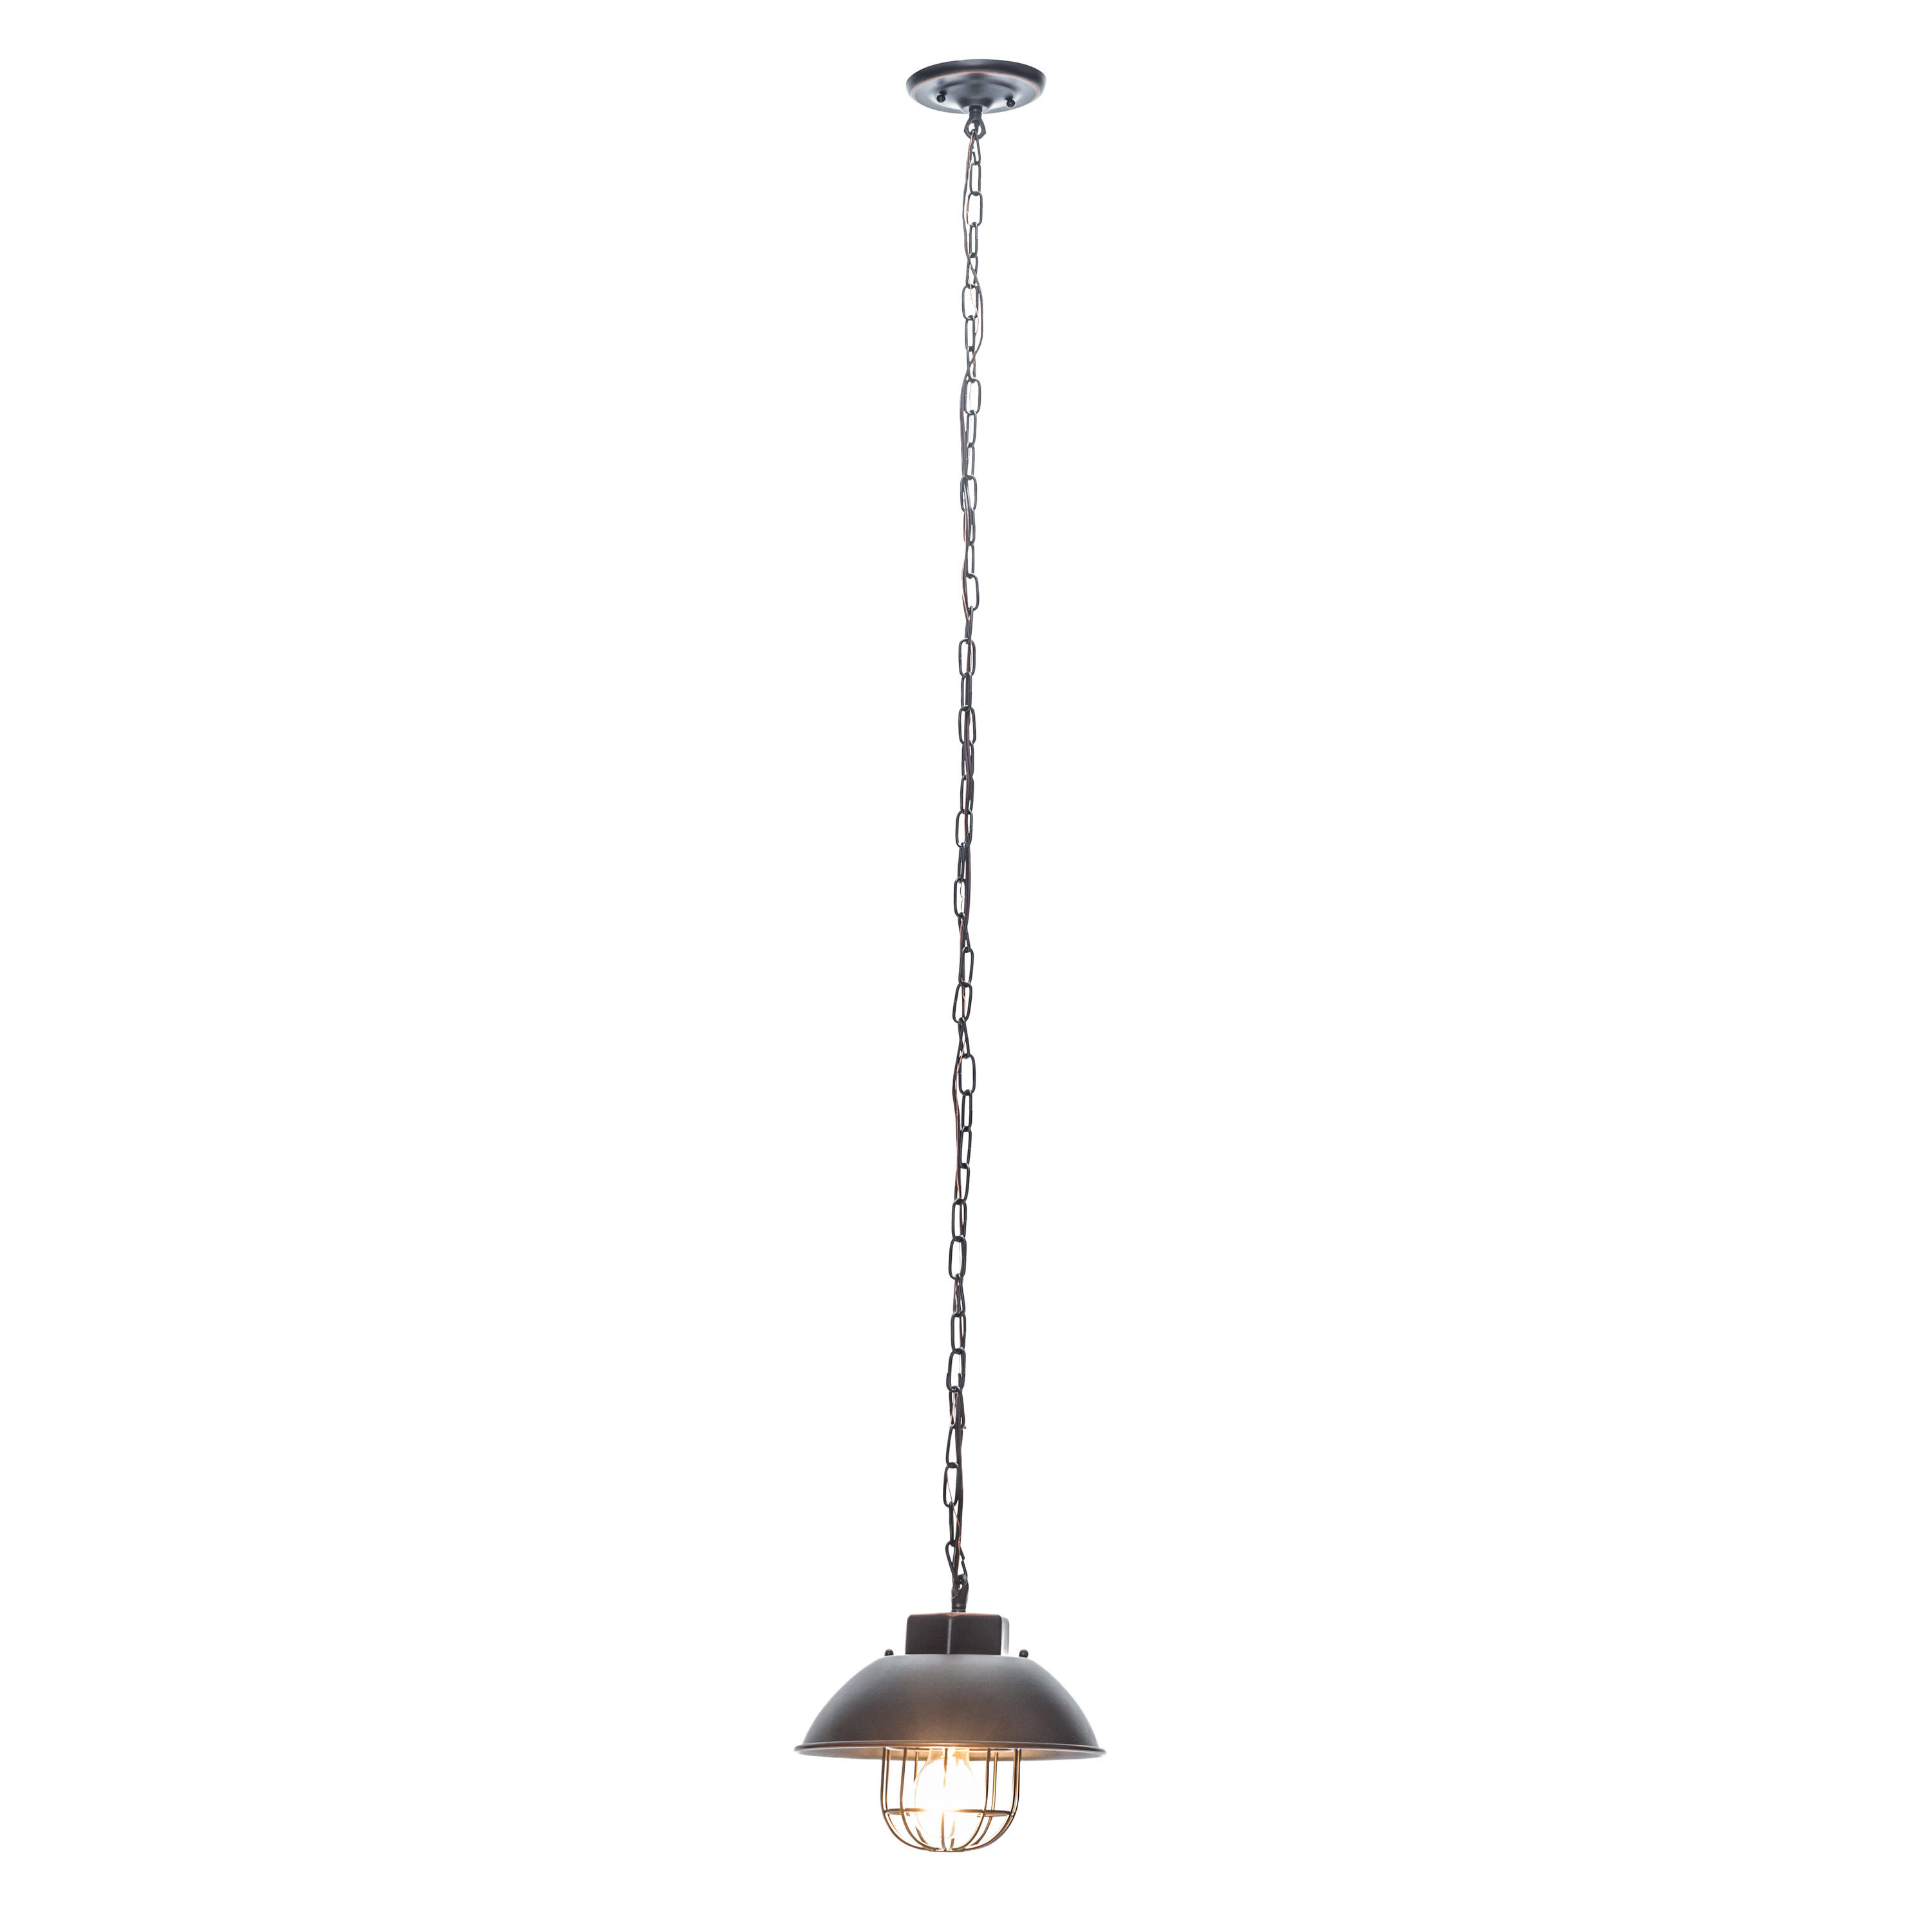 2020 Globe Electric 1 Light Oil Rubbed Bronze Vintage Edison Over Bulb Cage  Pendant, 64834 With Regard To Vintage Edison 1 Light Bowl Pendants (View 3 of 25)